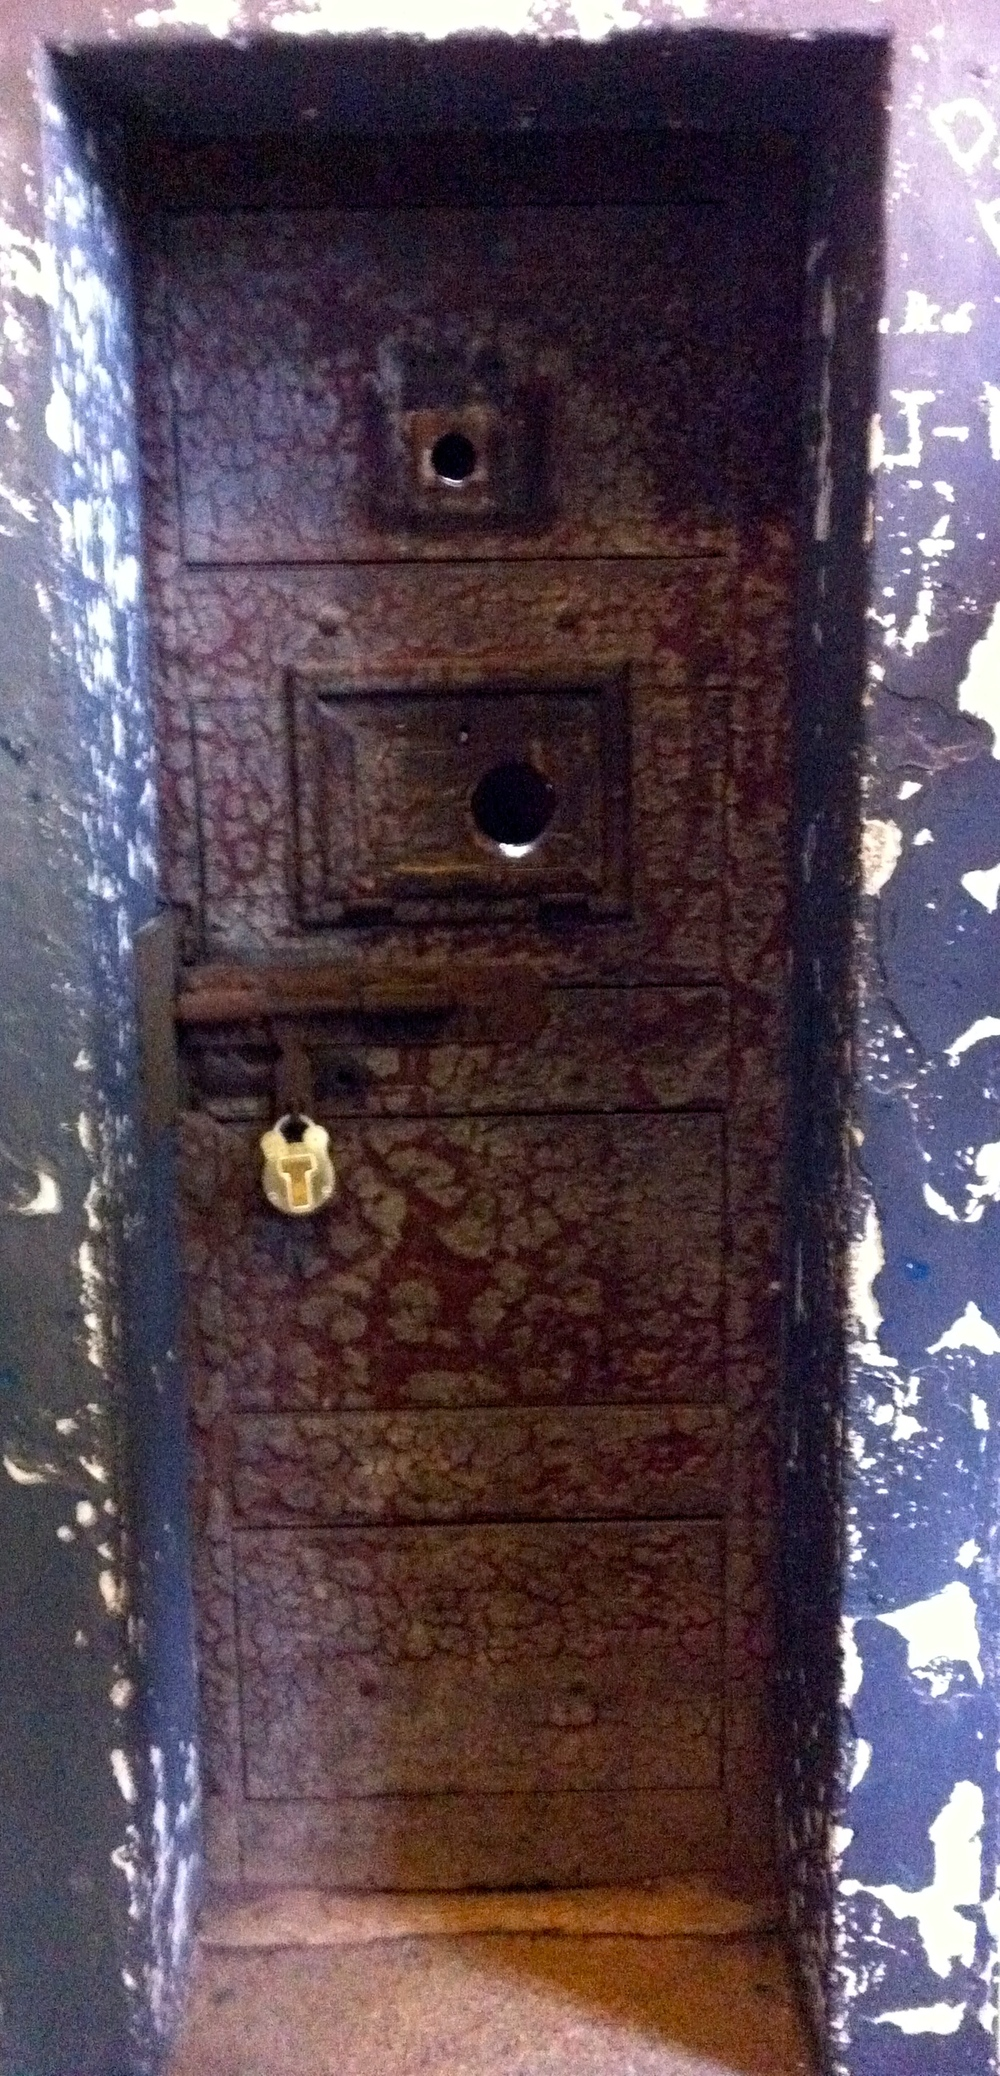 The gaol doors have centuries of grime encrusted on them to create a rich patina.